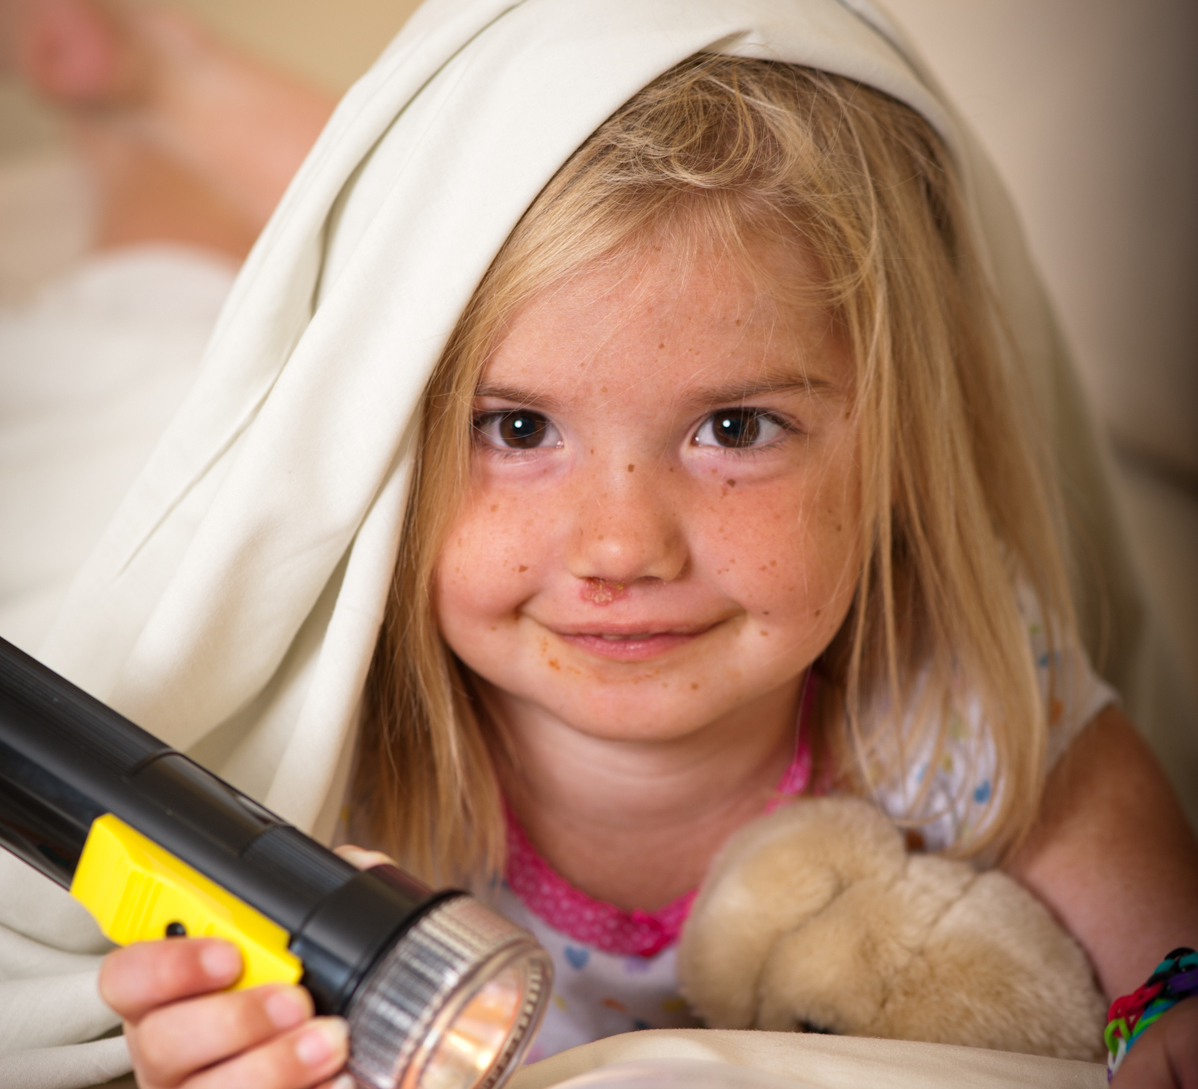 Makenna, little girl, with flashlight under blanket holding a teddy bear